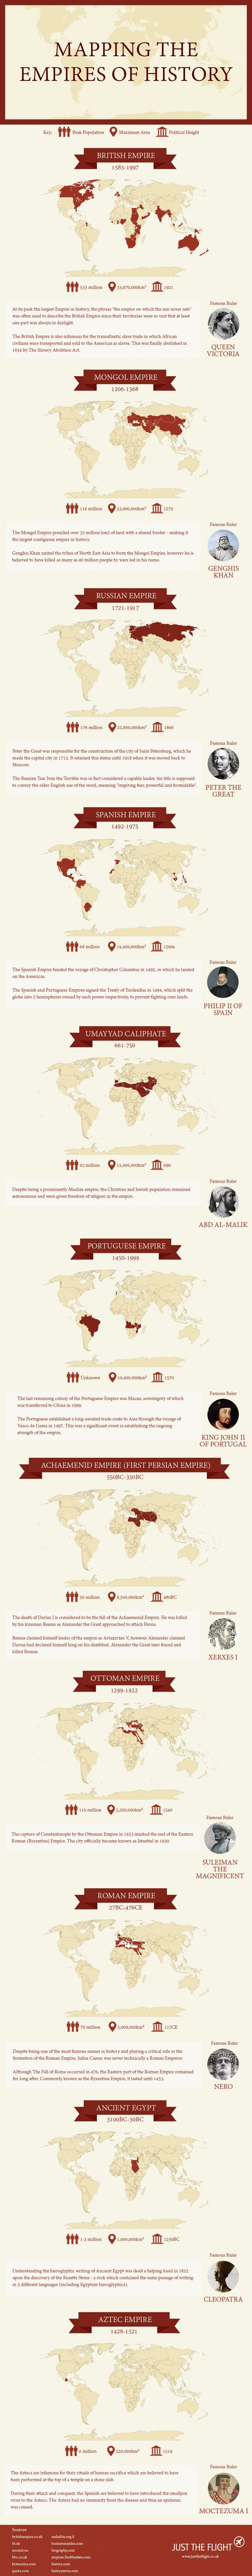 best ideas about ap world history world history mapping the empires of history infographic